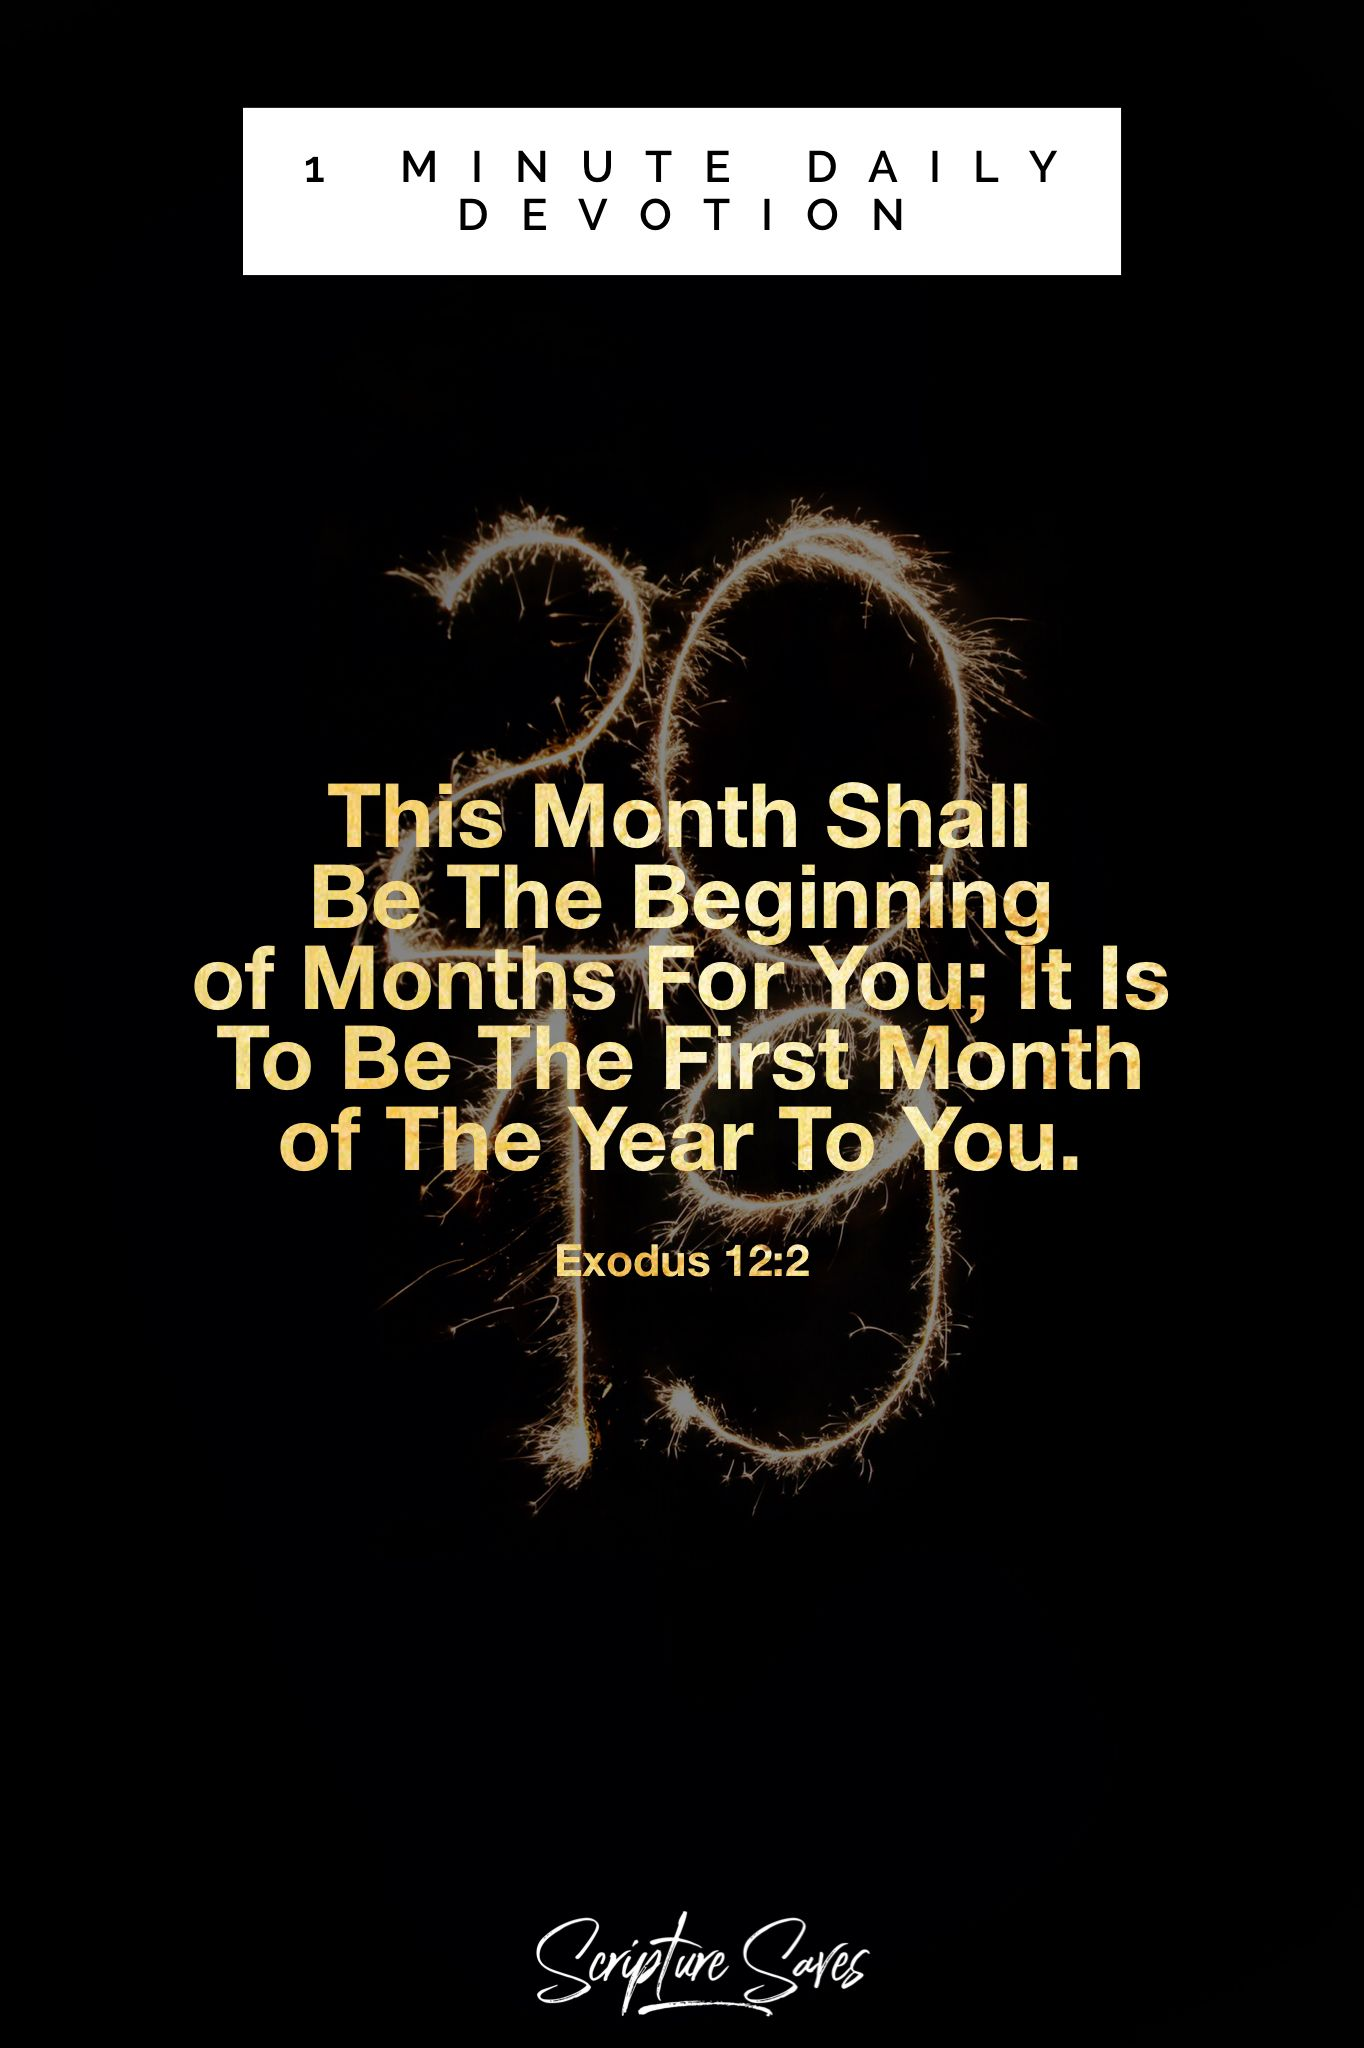 2019 Is The Beginning of 12 New Months For You New year